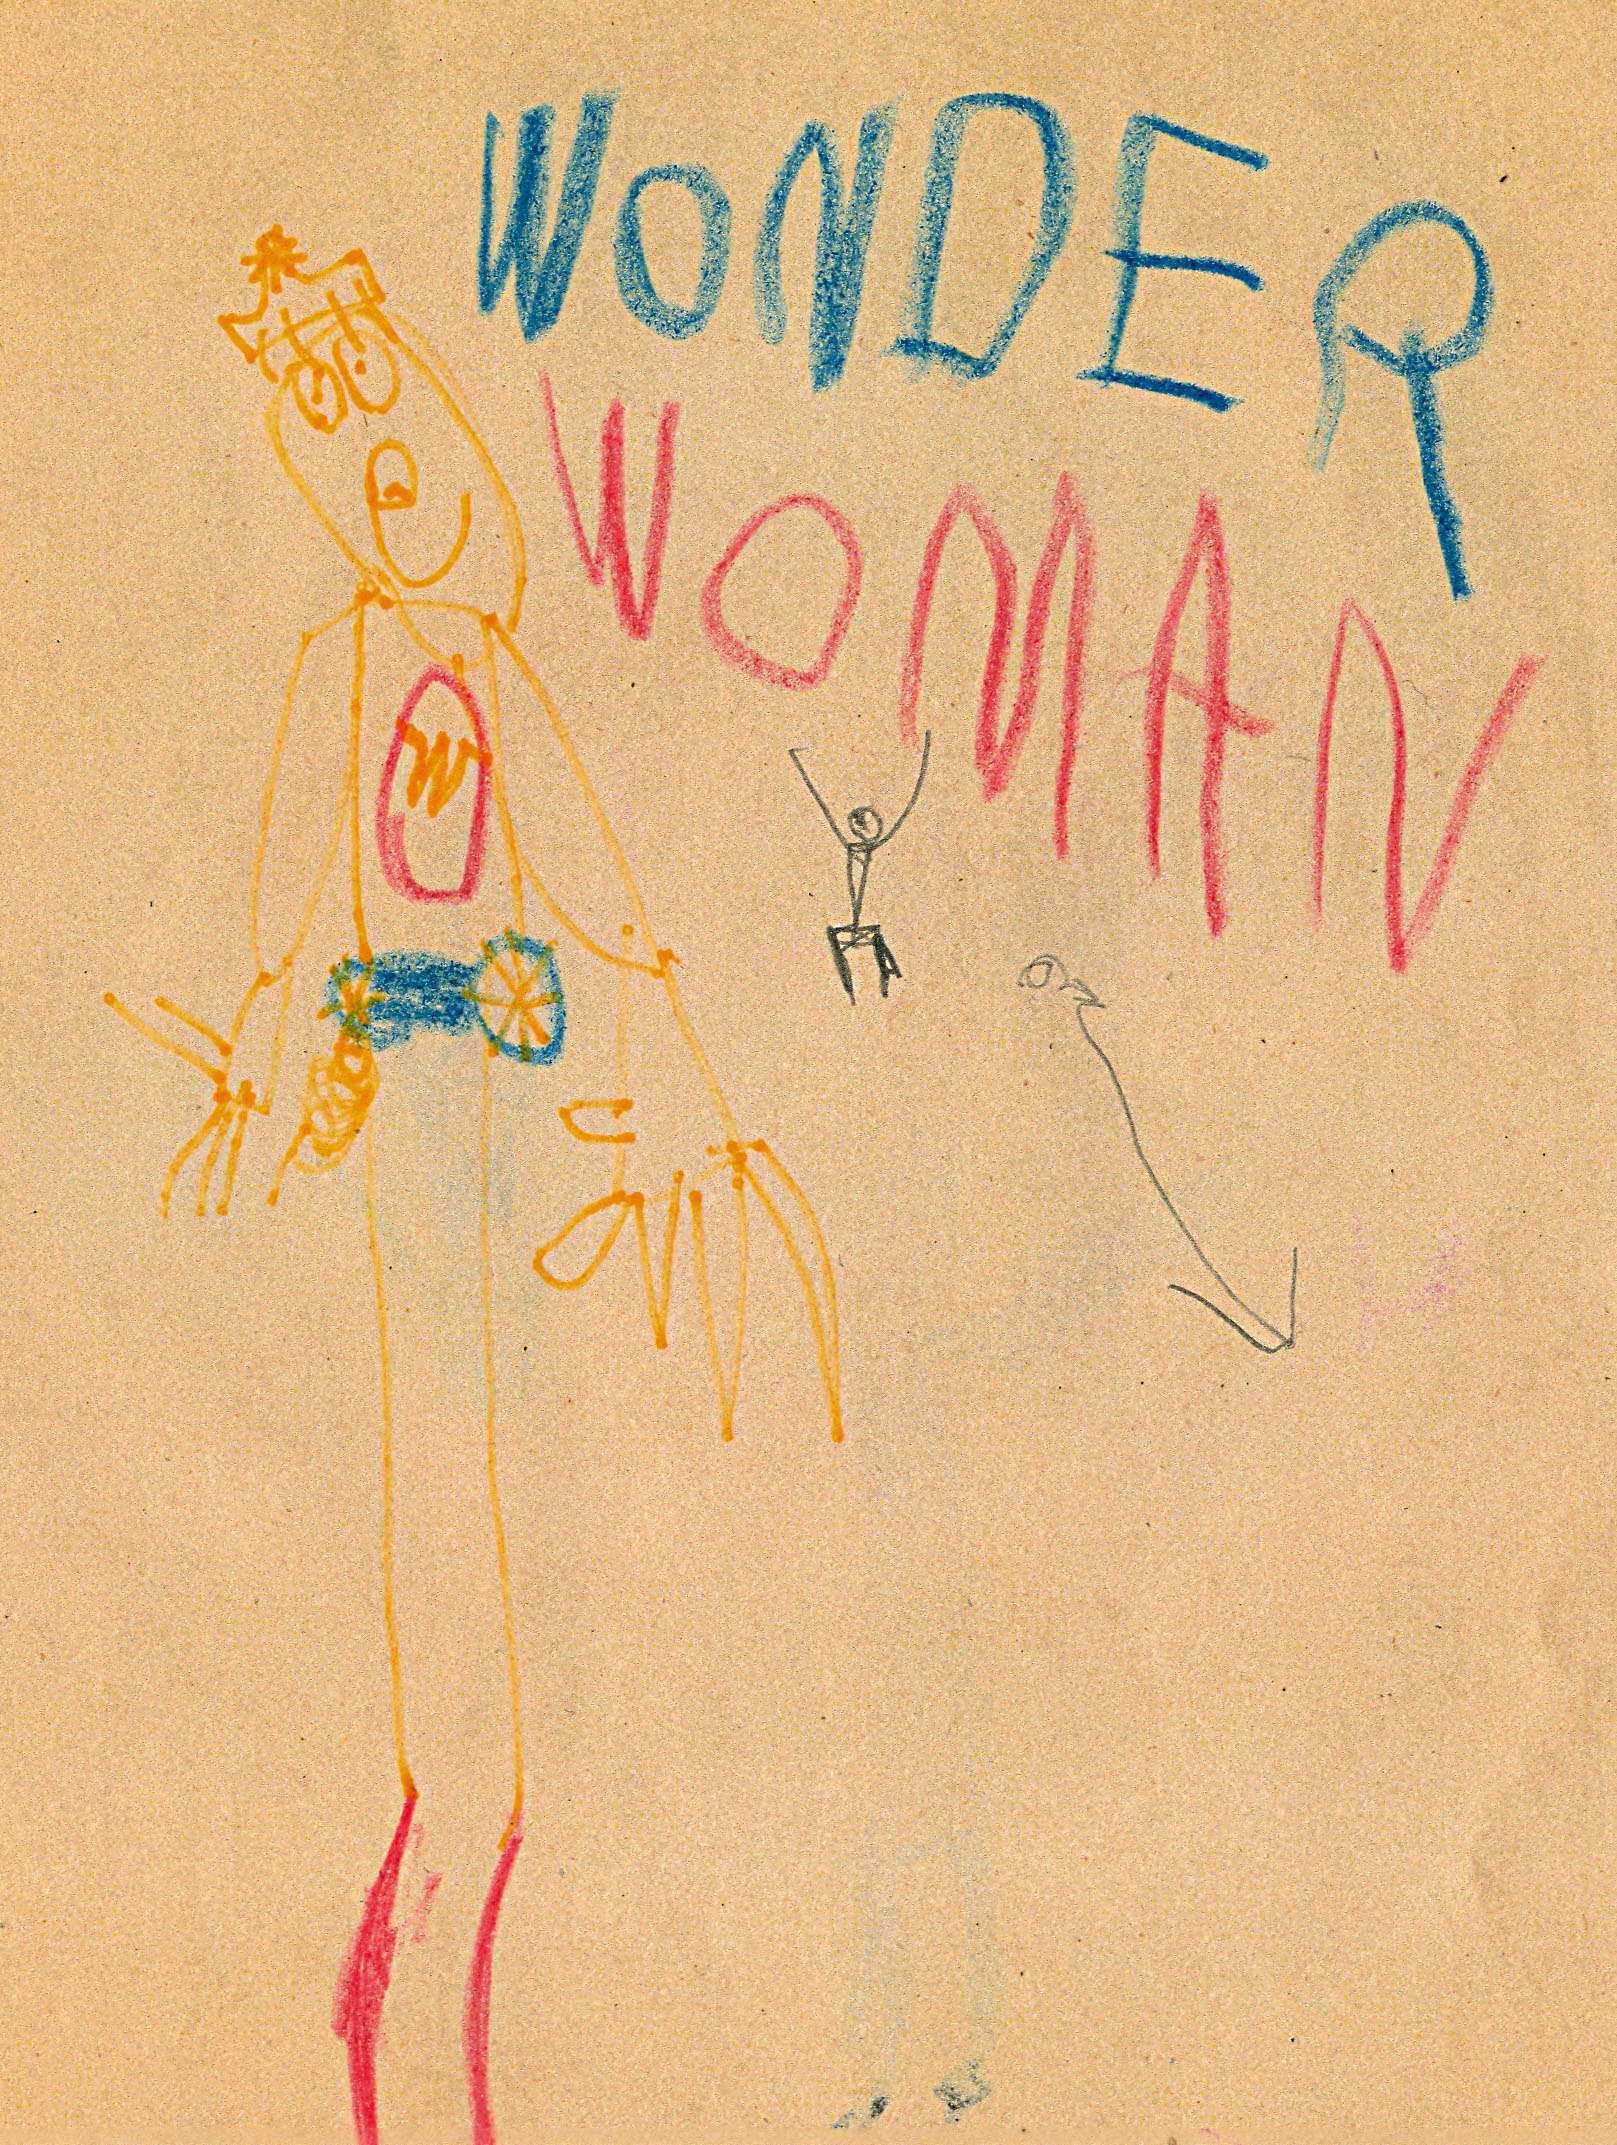 Wonder Woman variant cover by Nate Powell (age 4), 1982.